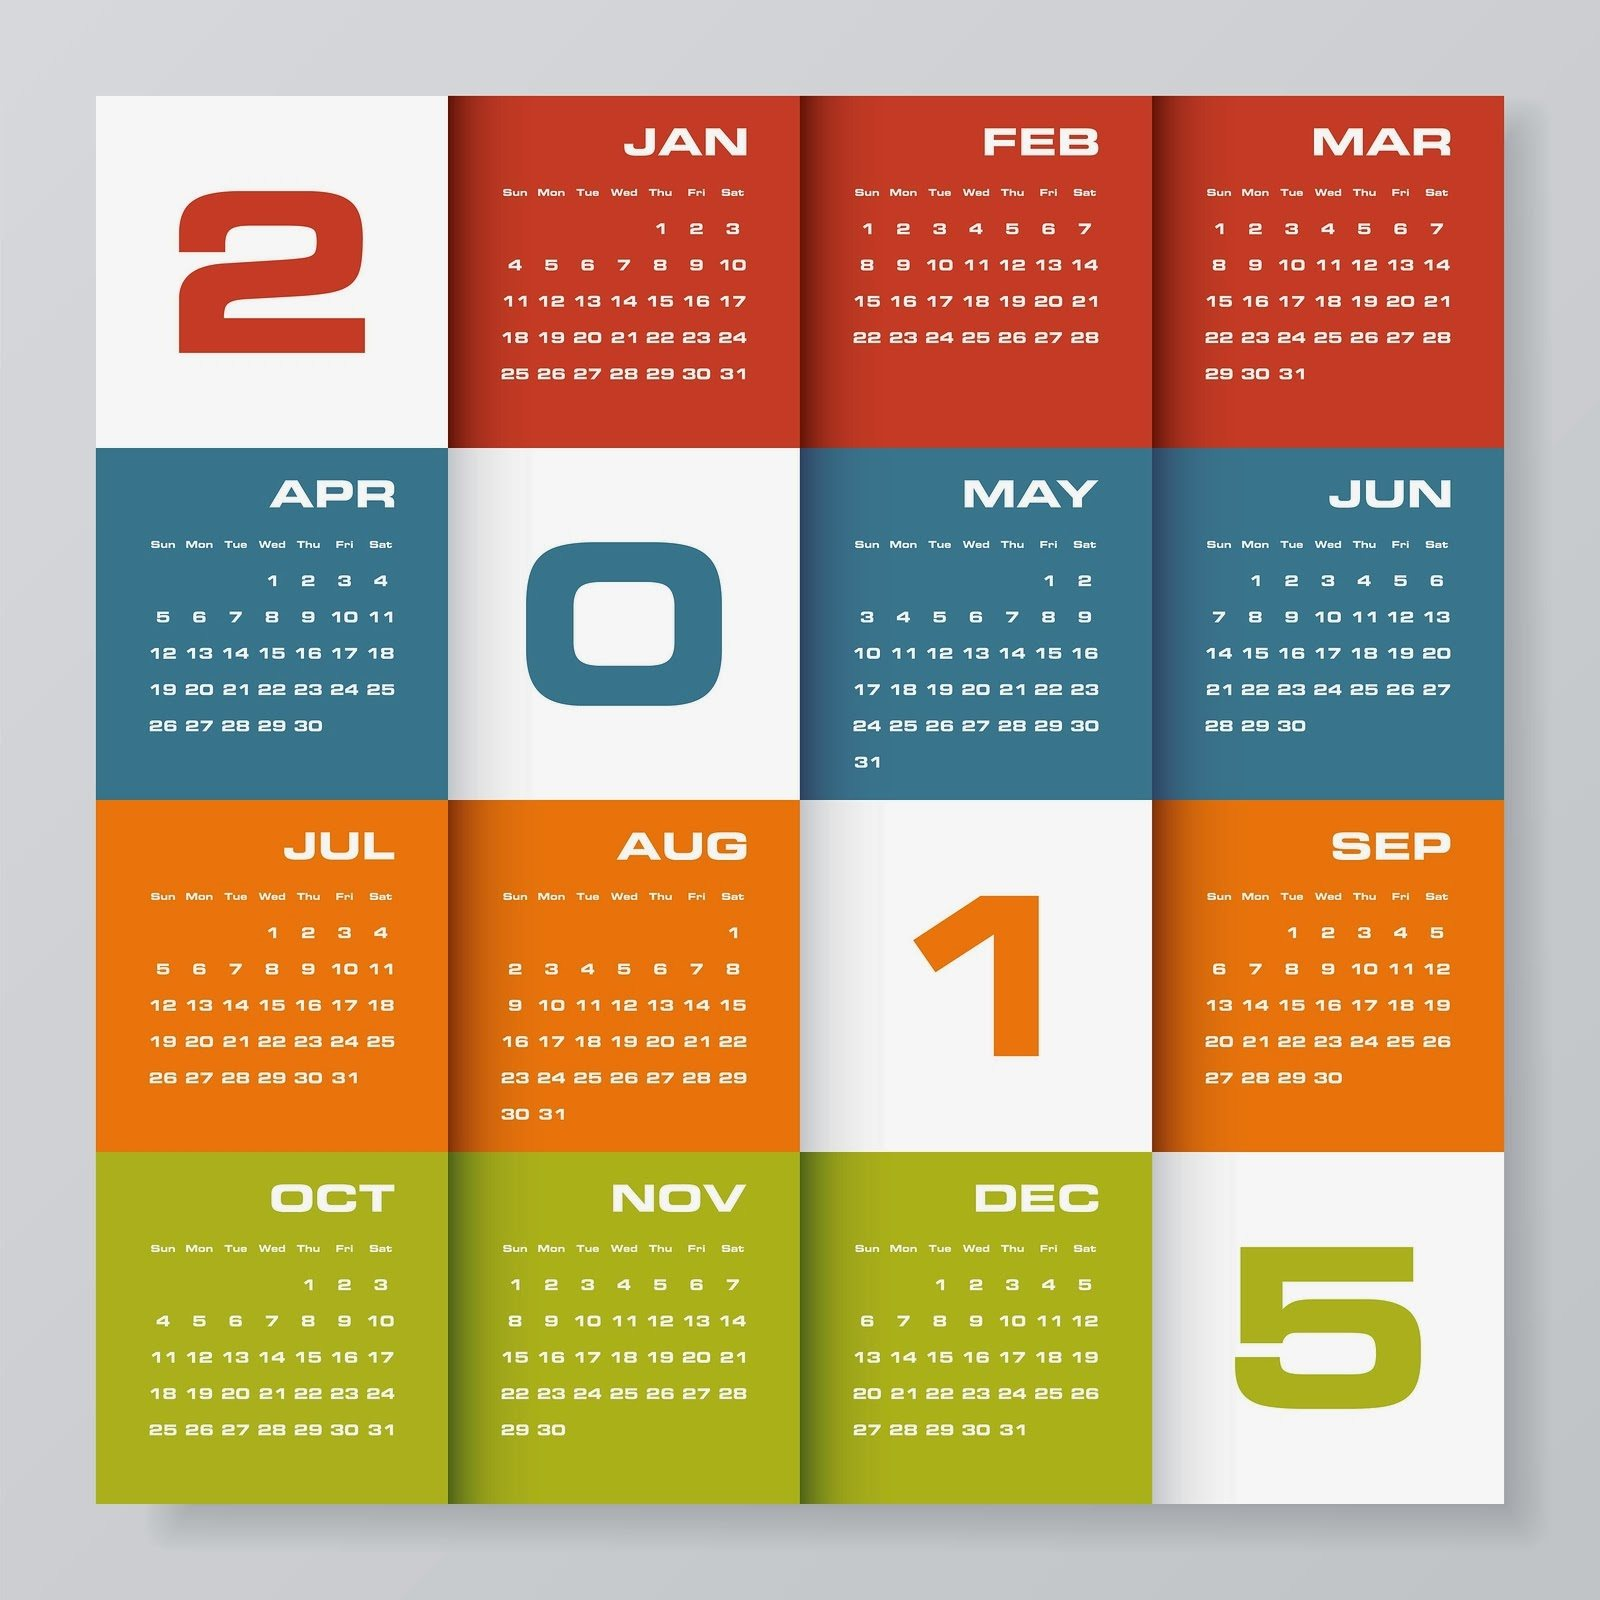 Yearly Calendar Design : Amazing calendar for year designs